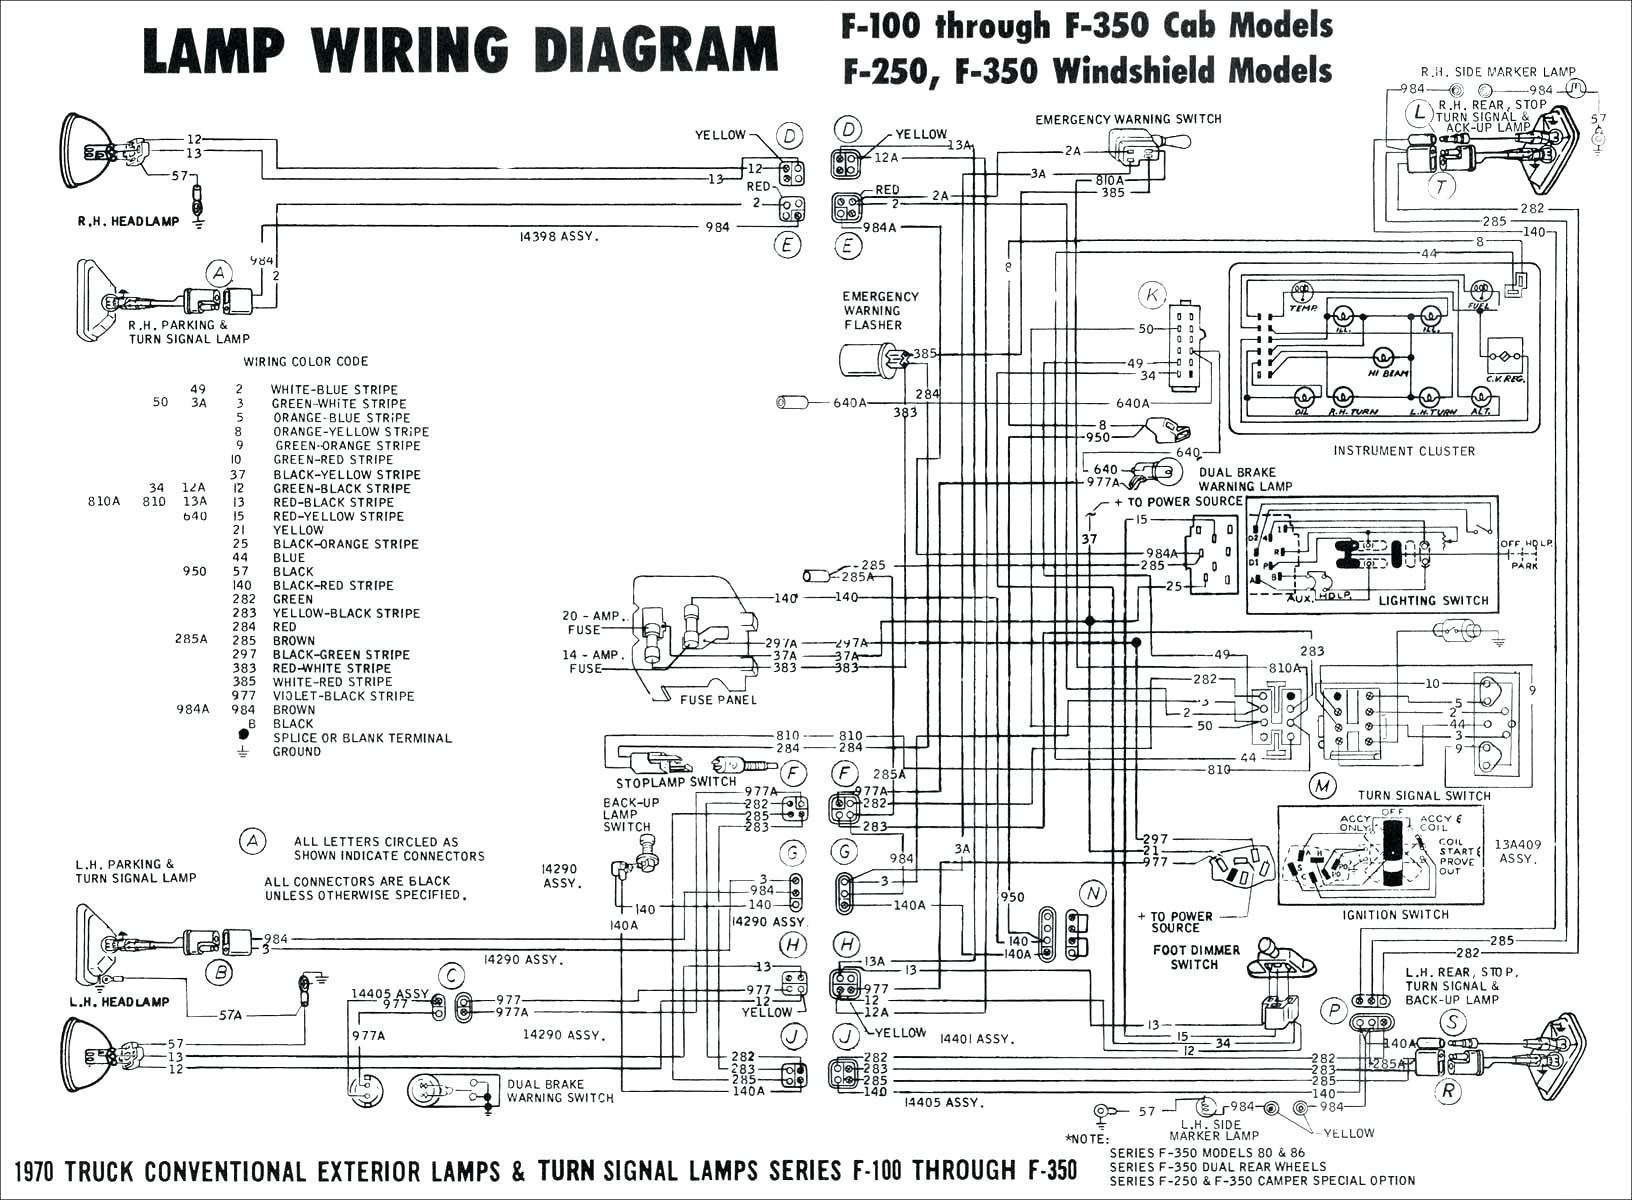 hdmi cable pin diagram awesome wiring diagram hdmi cable best wiring